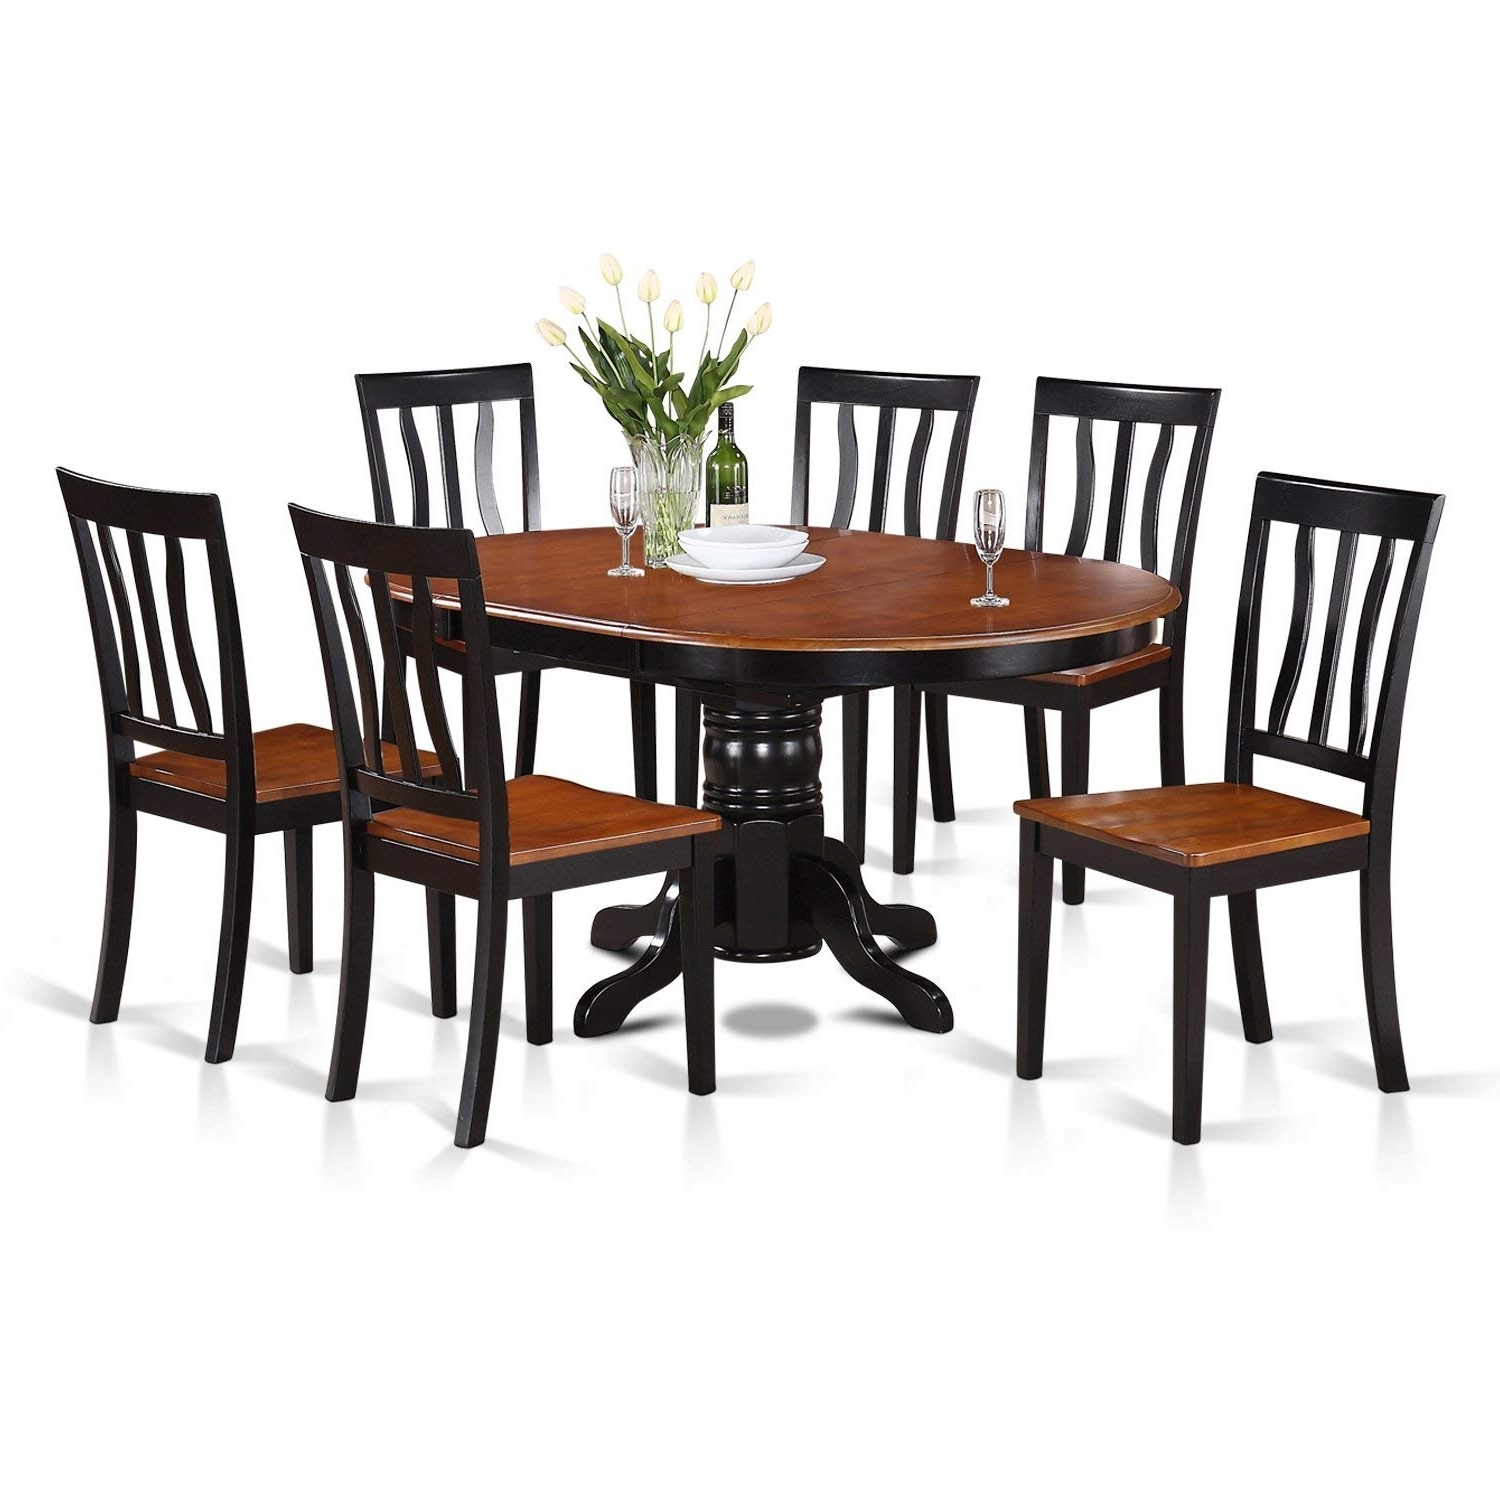 Favorite Amazon: East West Furniture Avat7 Blk W 7 Piece Dining Table Set Pertaining To Craftsman 7 Piece Rectangle Extension Dining Sets With Side Chairs (View 14 of 25)